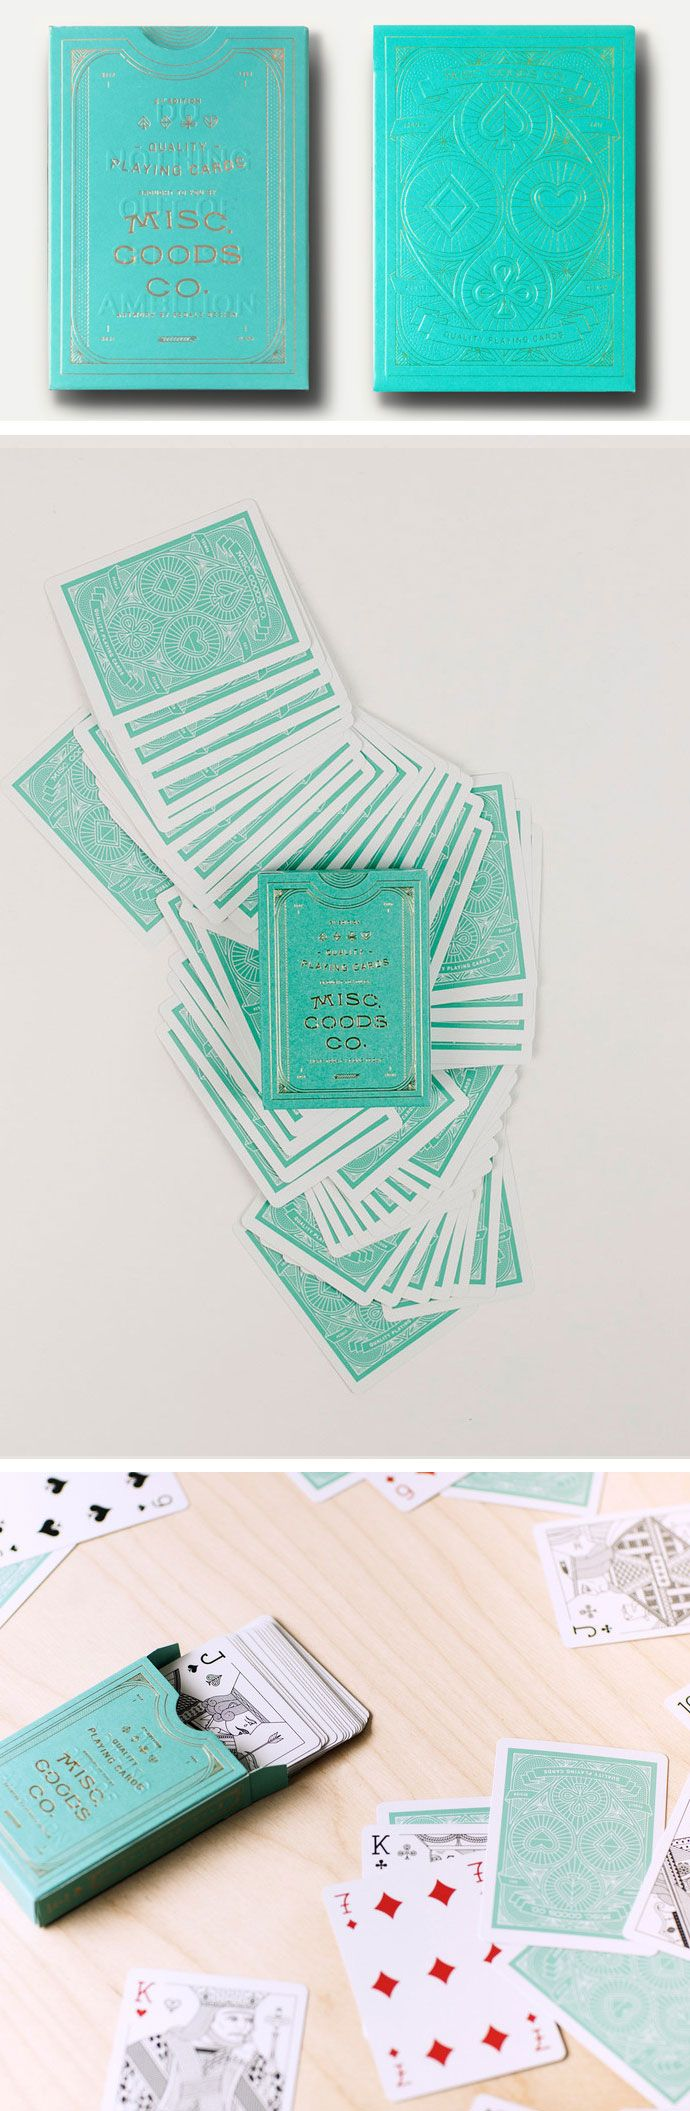 Misc. Goods Playing Cards are a complete redesign, from the unique card backs to the intricate court cards. Even the fonts and symbols have been reimagined to create a very specific aesthetic and feel. Most striking of all is the foiled and embossed tuck case, which includes so many intricate details that you'll probably discover something new each time you examine it. Currently available in black, sea green, blue, and red. #colossal